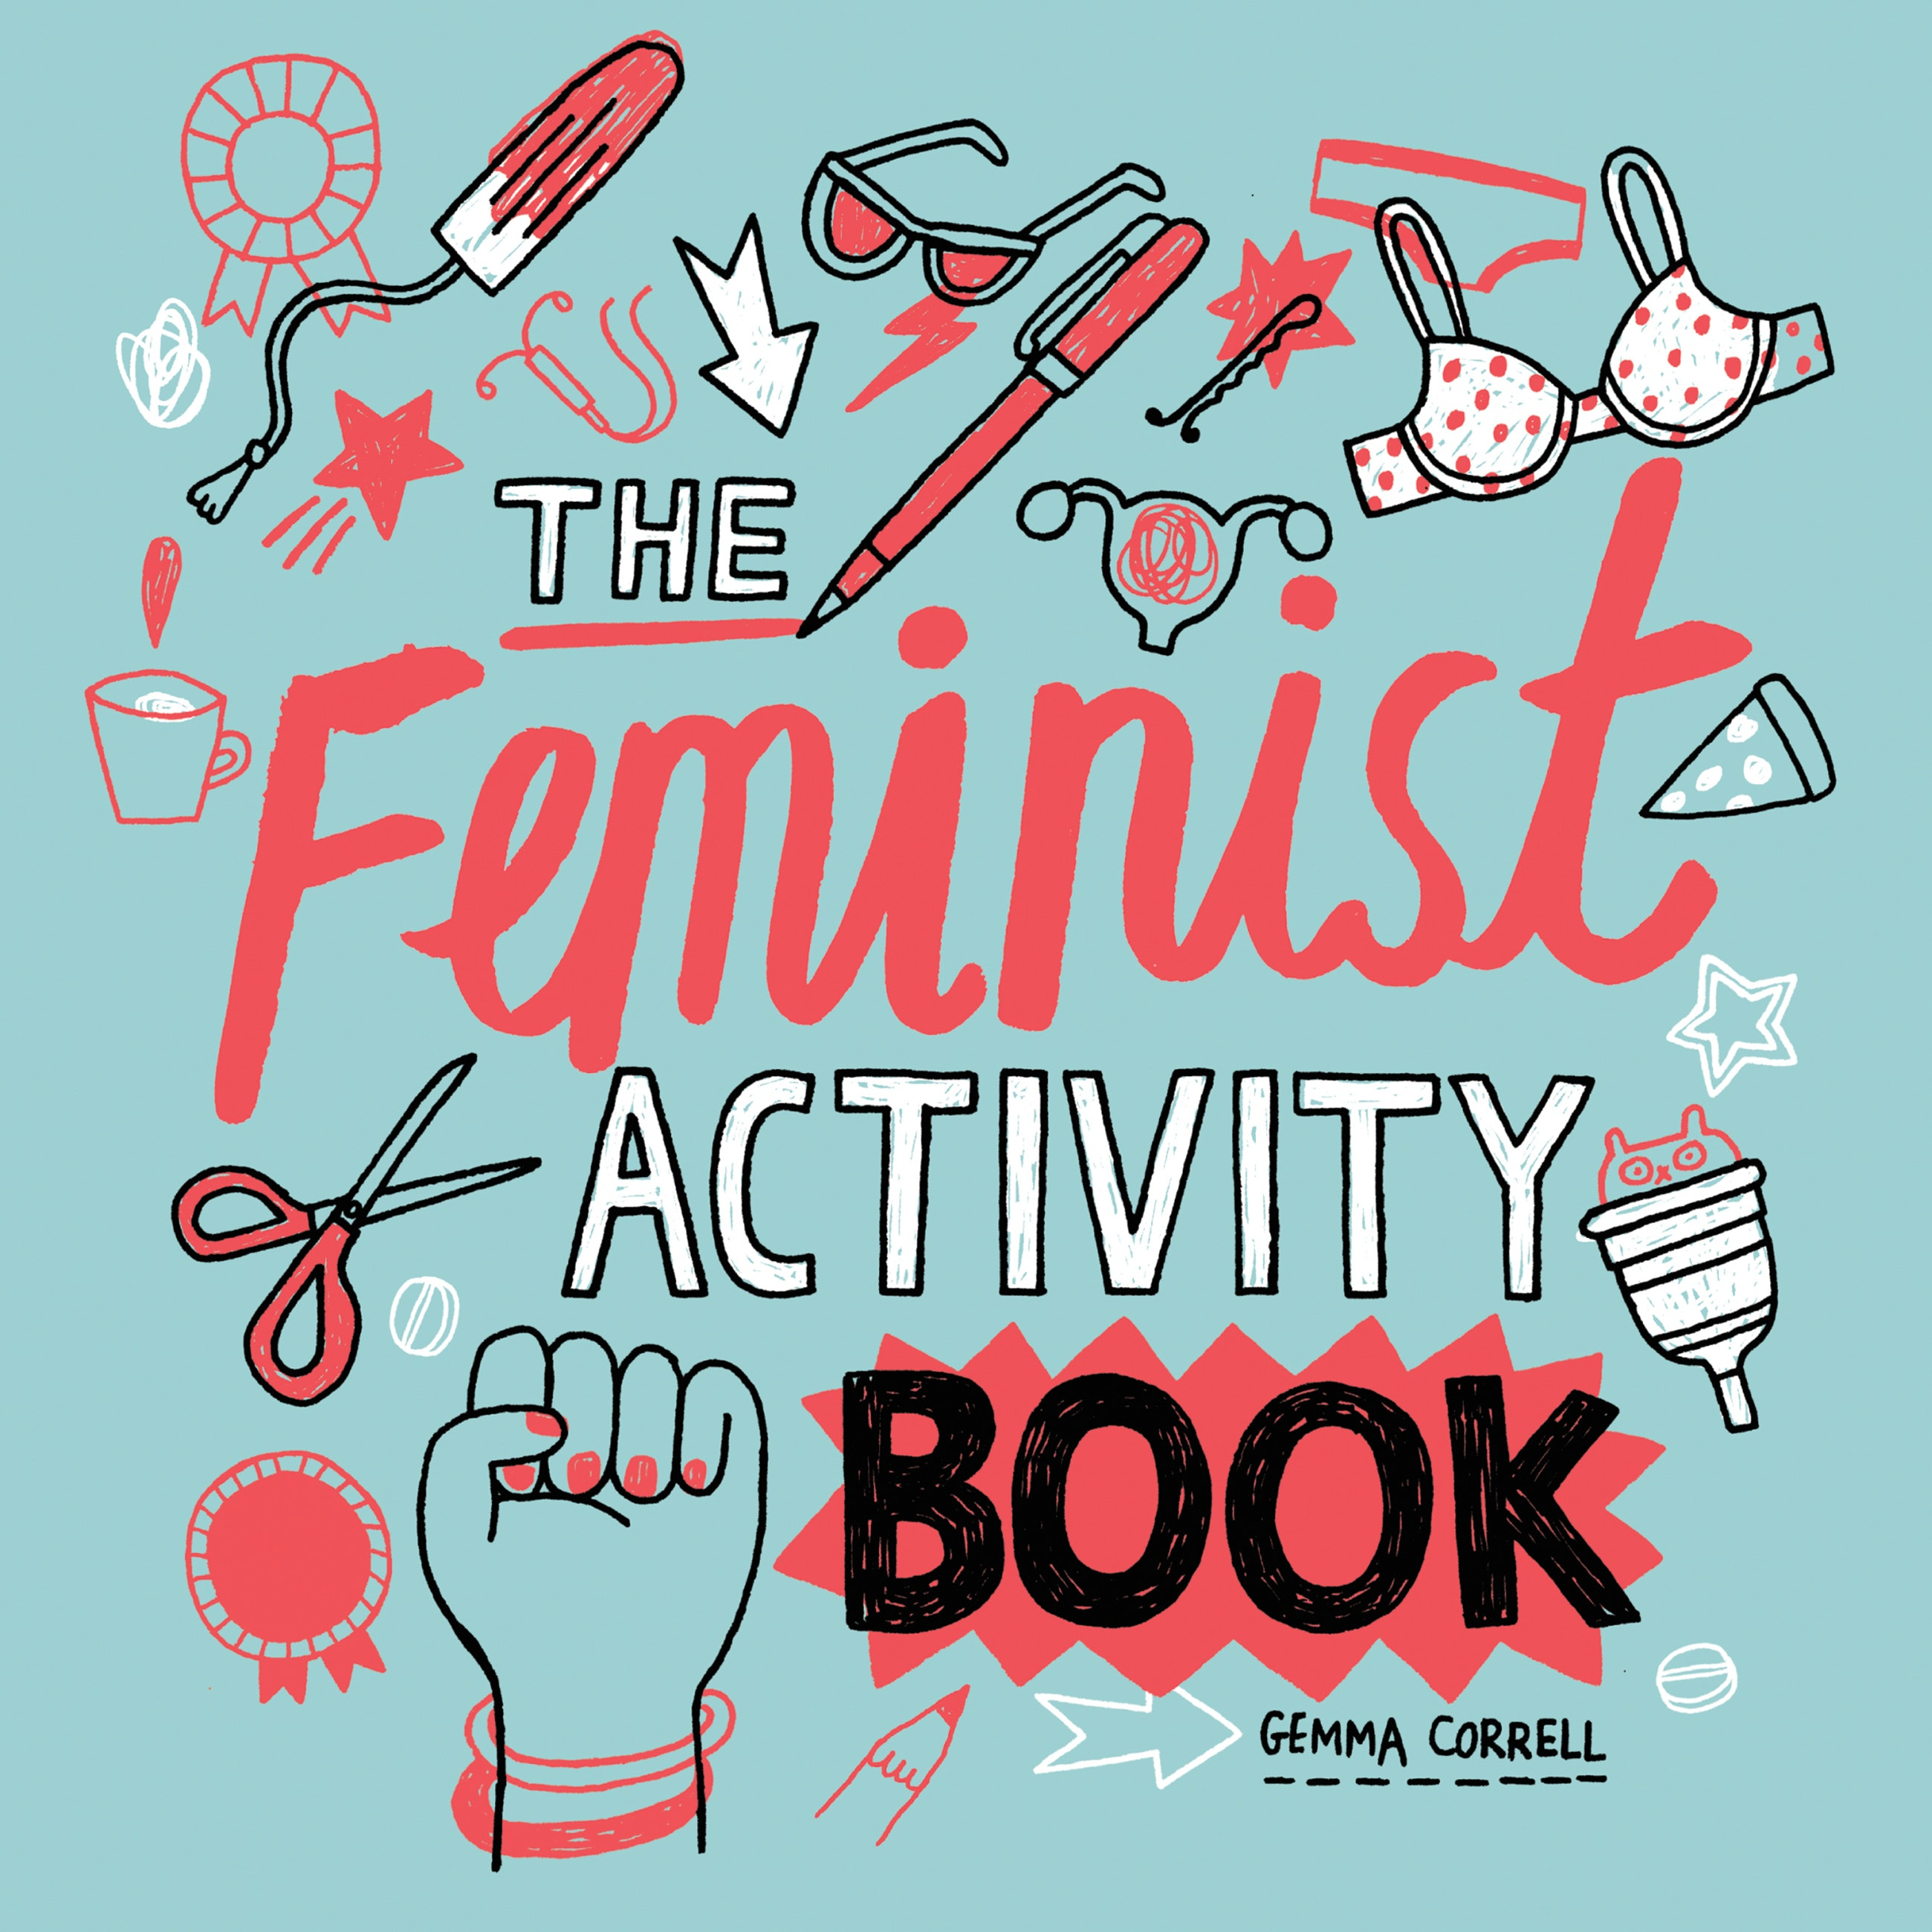 9 Adult Activity Books To Help You Relieve Some Of Your End Of Year ...